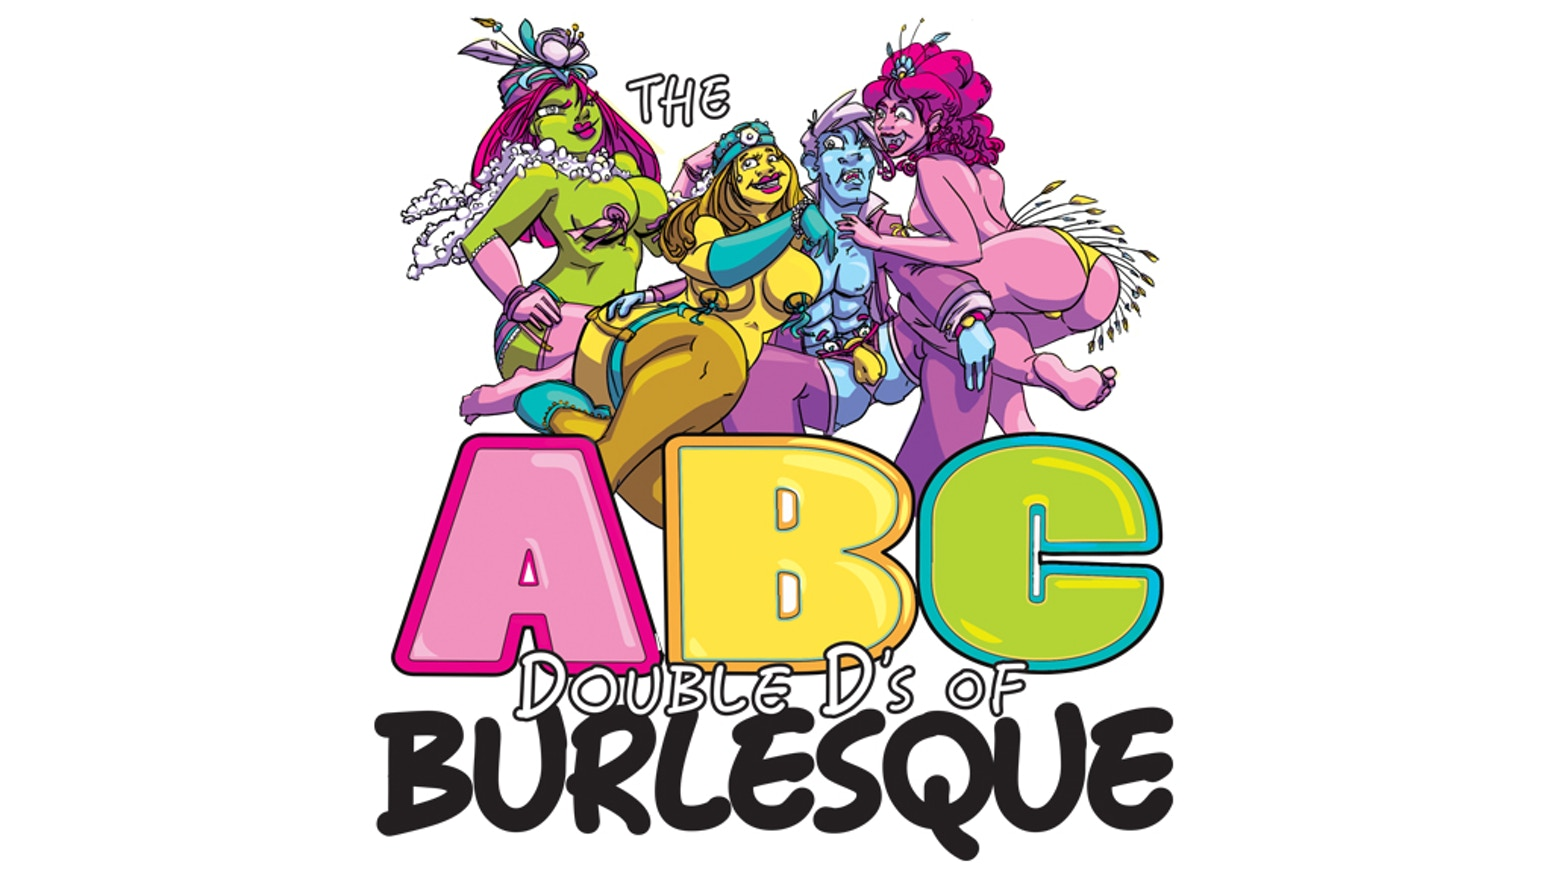 An illustrated ABC encyclopedia about the art of striptease! A light and bright summary on everything burlesque.